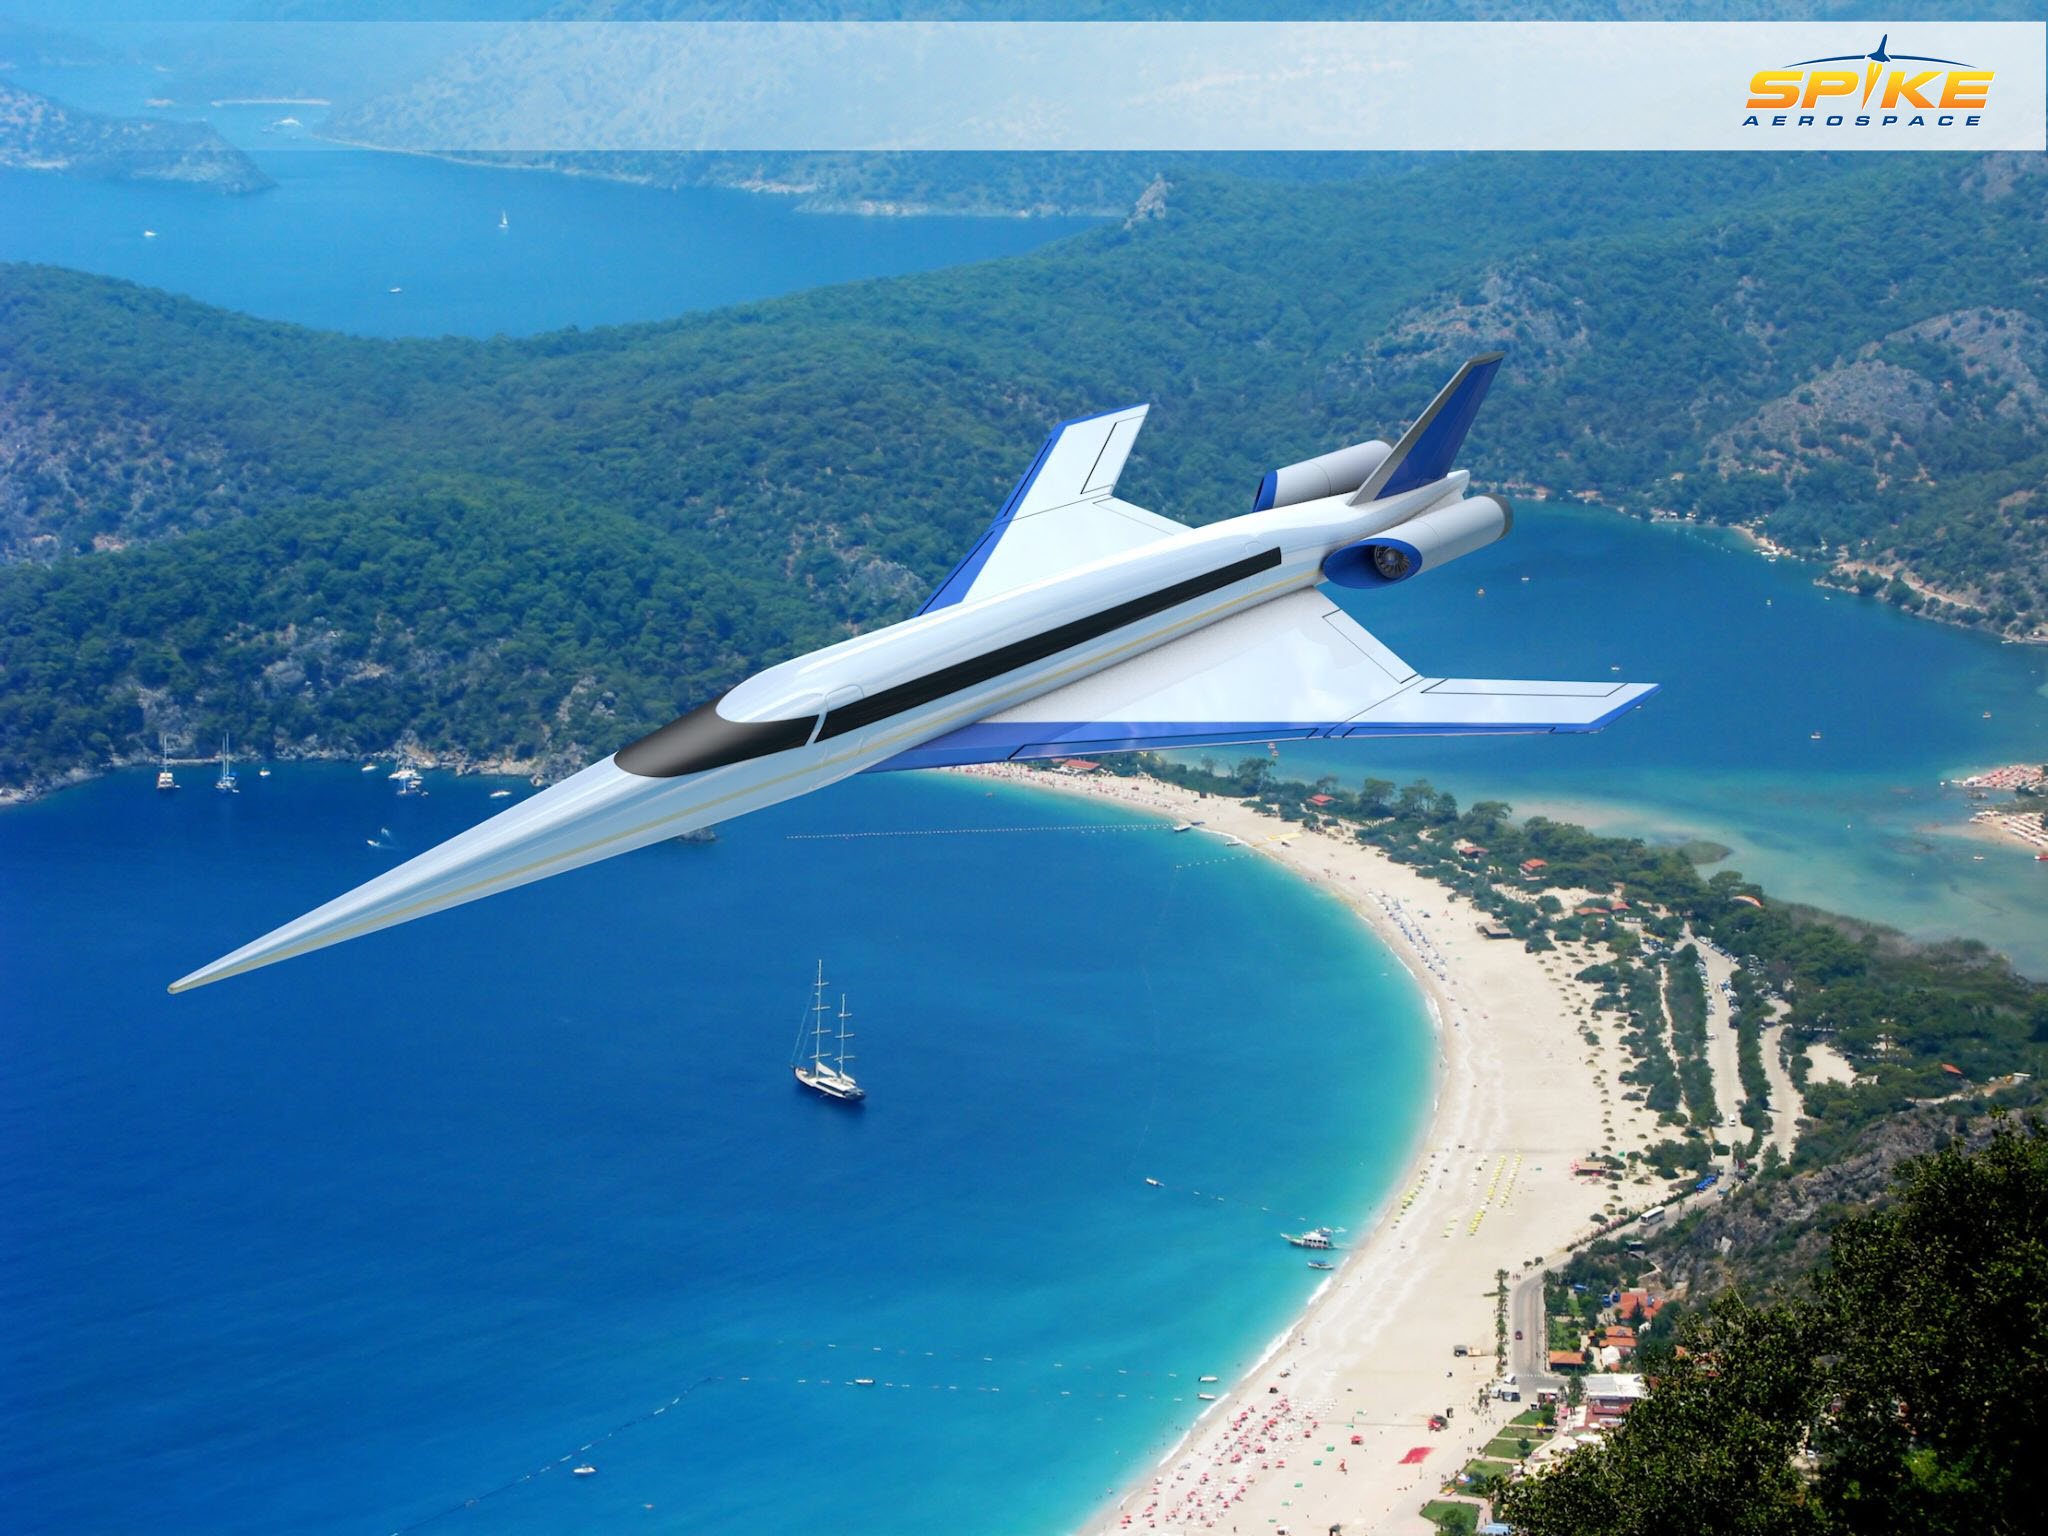 Spike S-512 Quiet Supersonic Jet flies over a serene beach